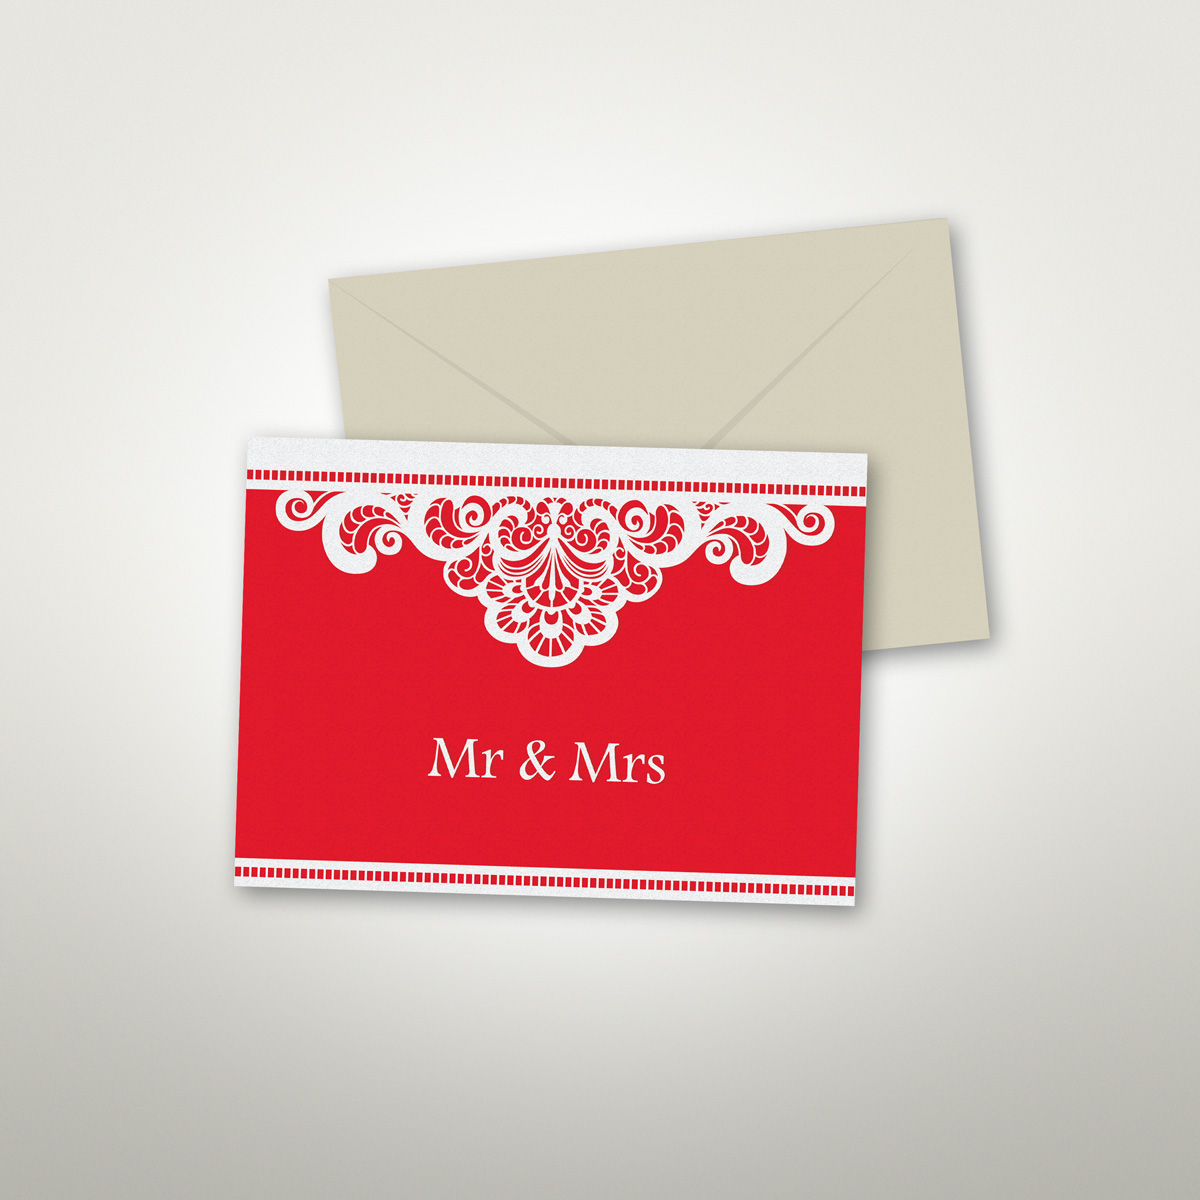 instant high quality wedding card free delivery london ec2 near me